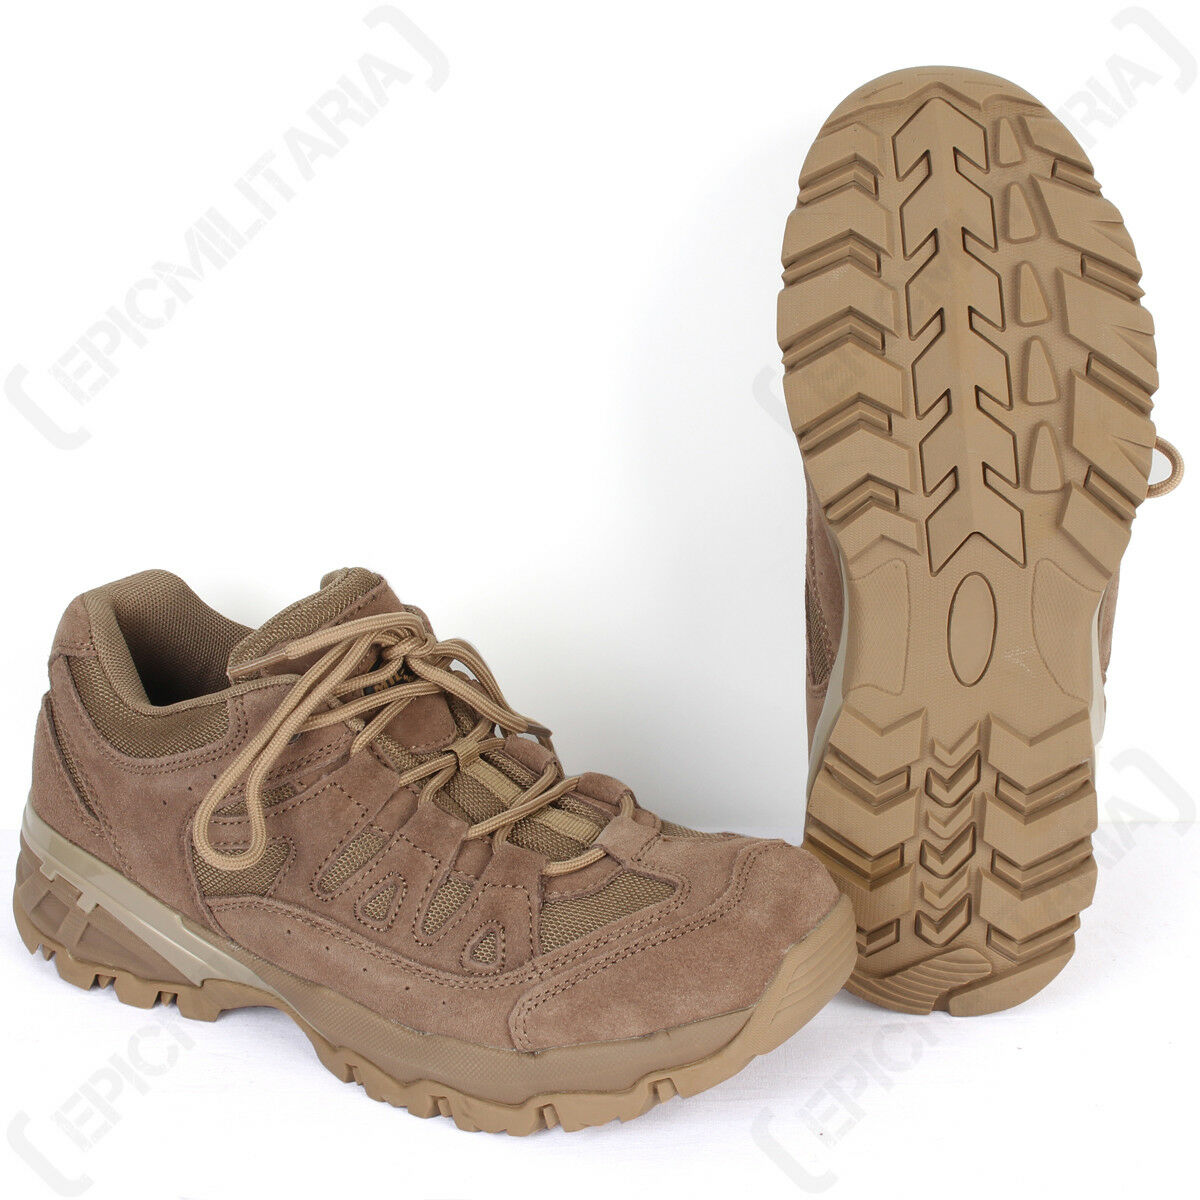 Coyote Squad Shoes - Walking Hiking Work Security Outdoor Footwear All Sizes New